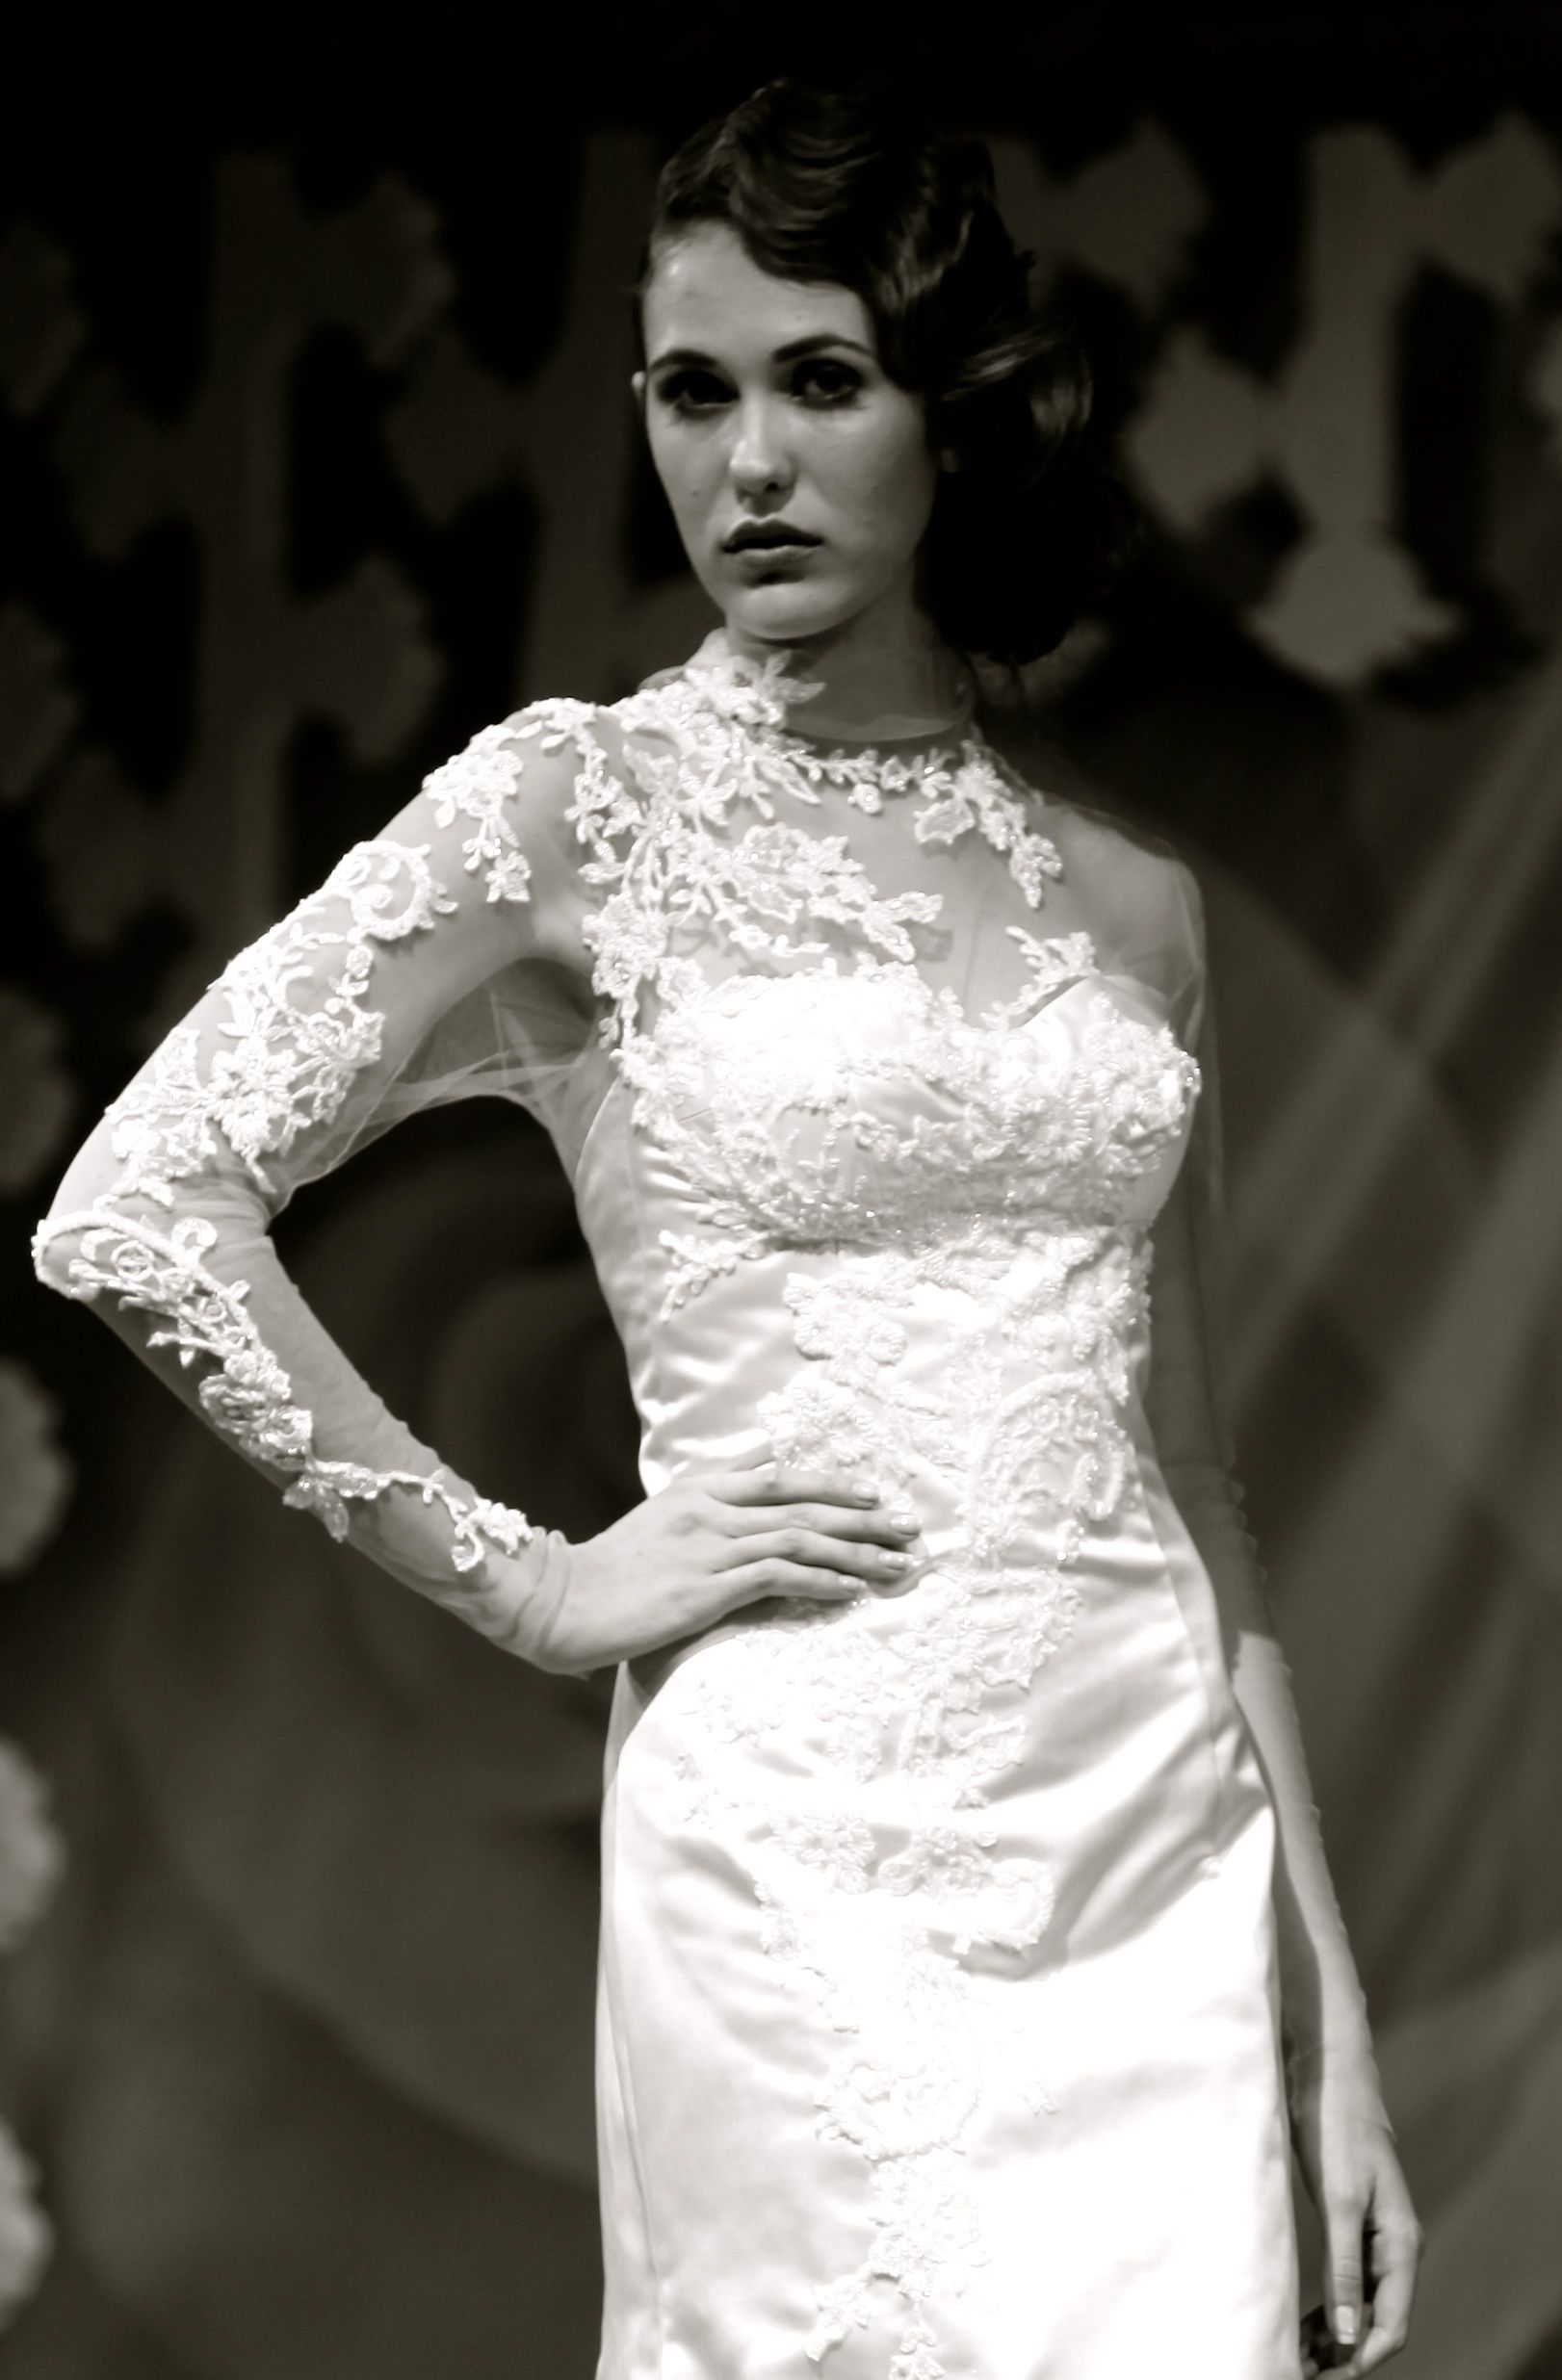 Hand-stitched lace and bead applique.  Dress by The Couture Gallery designer Britta Kjerkegaard